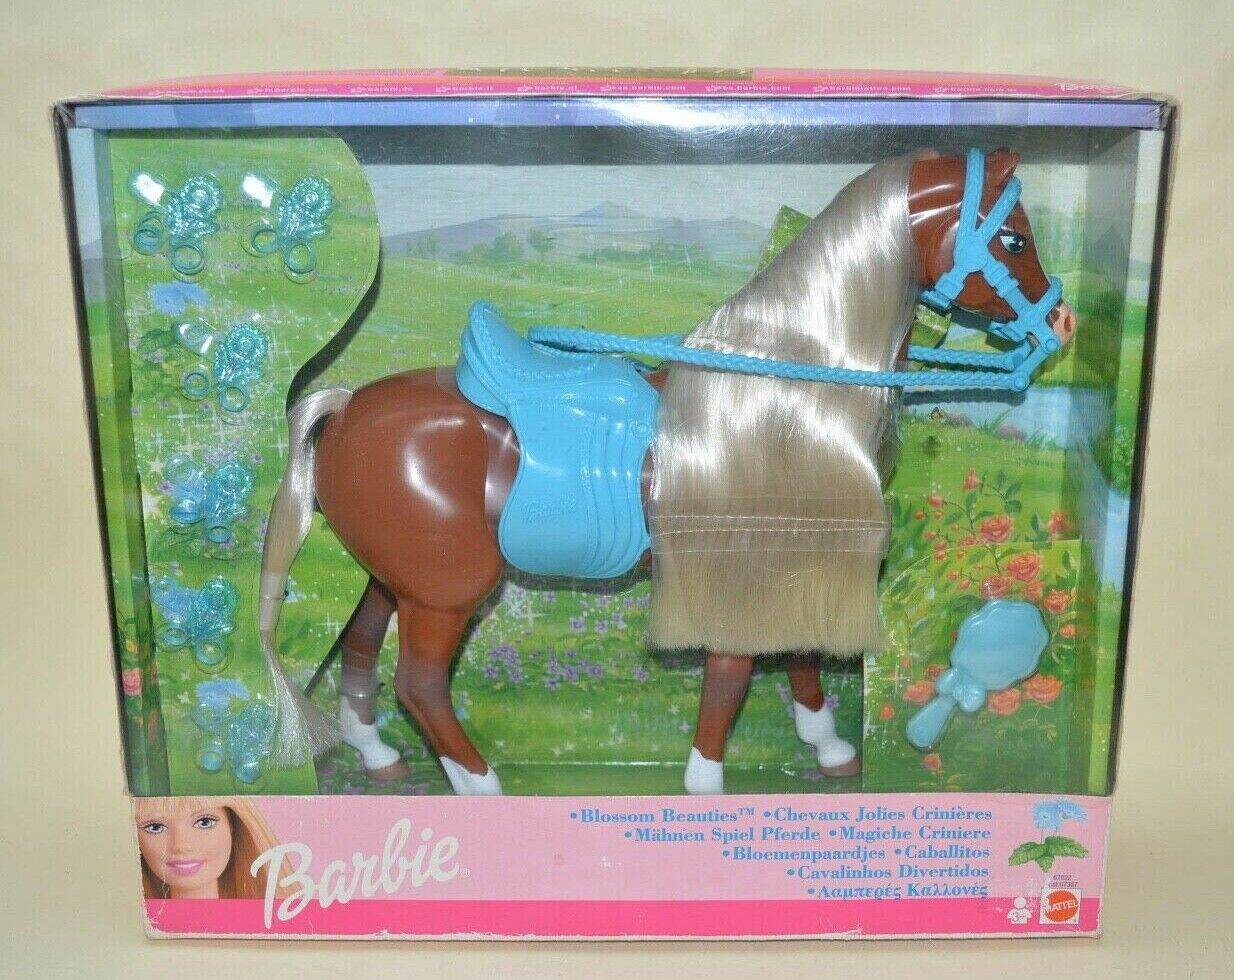 Vintage Barbie Horse 2002 Blossom Beauties Blau Flowers Mattel Boxed Unused